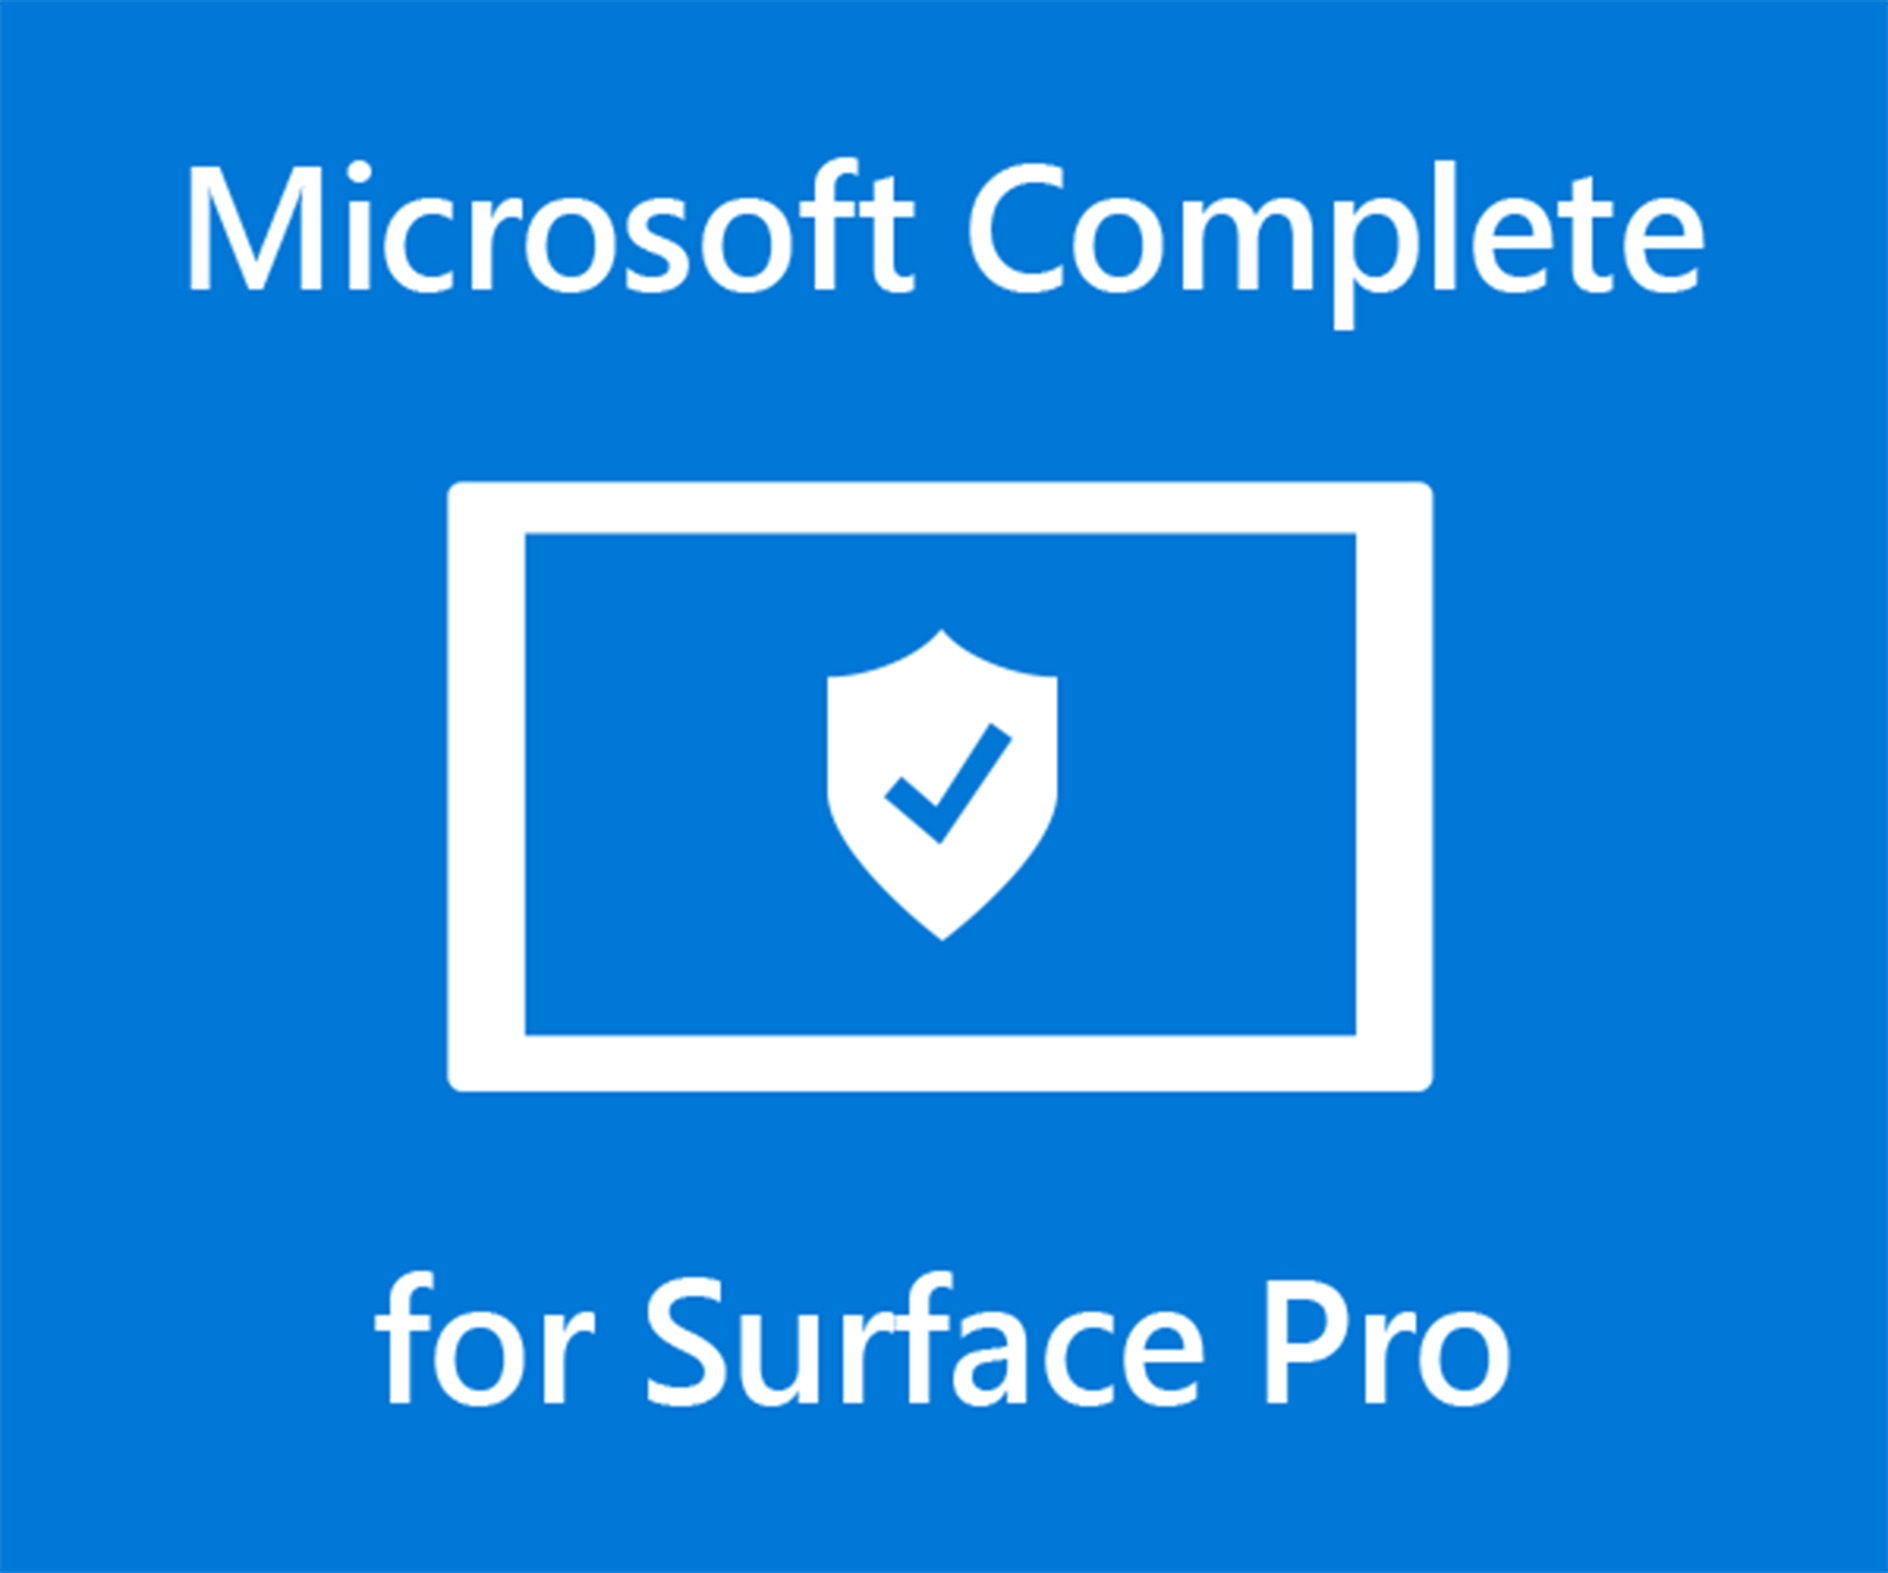 Microsoft Complete for Surface Pro